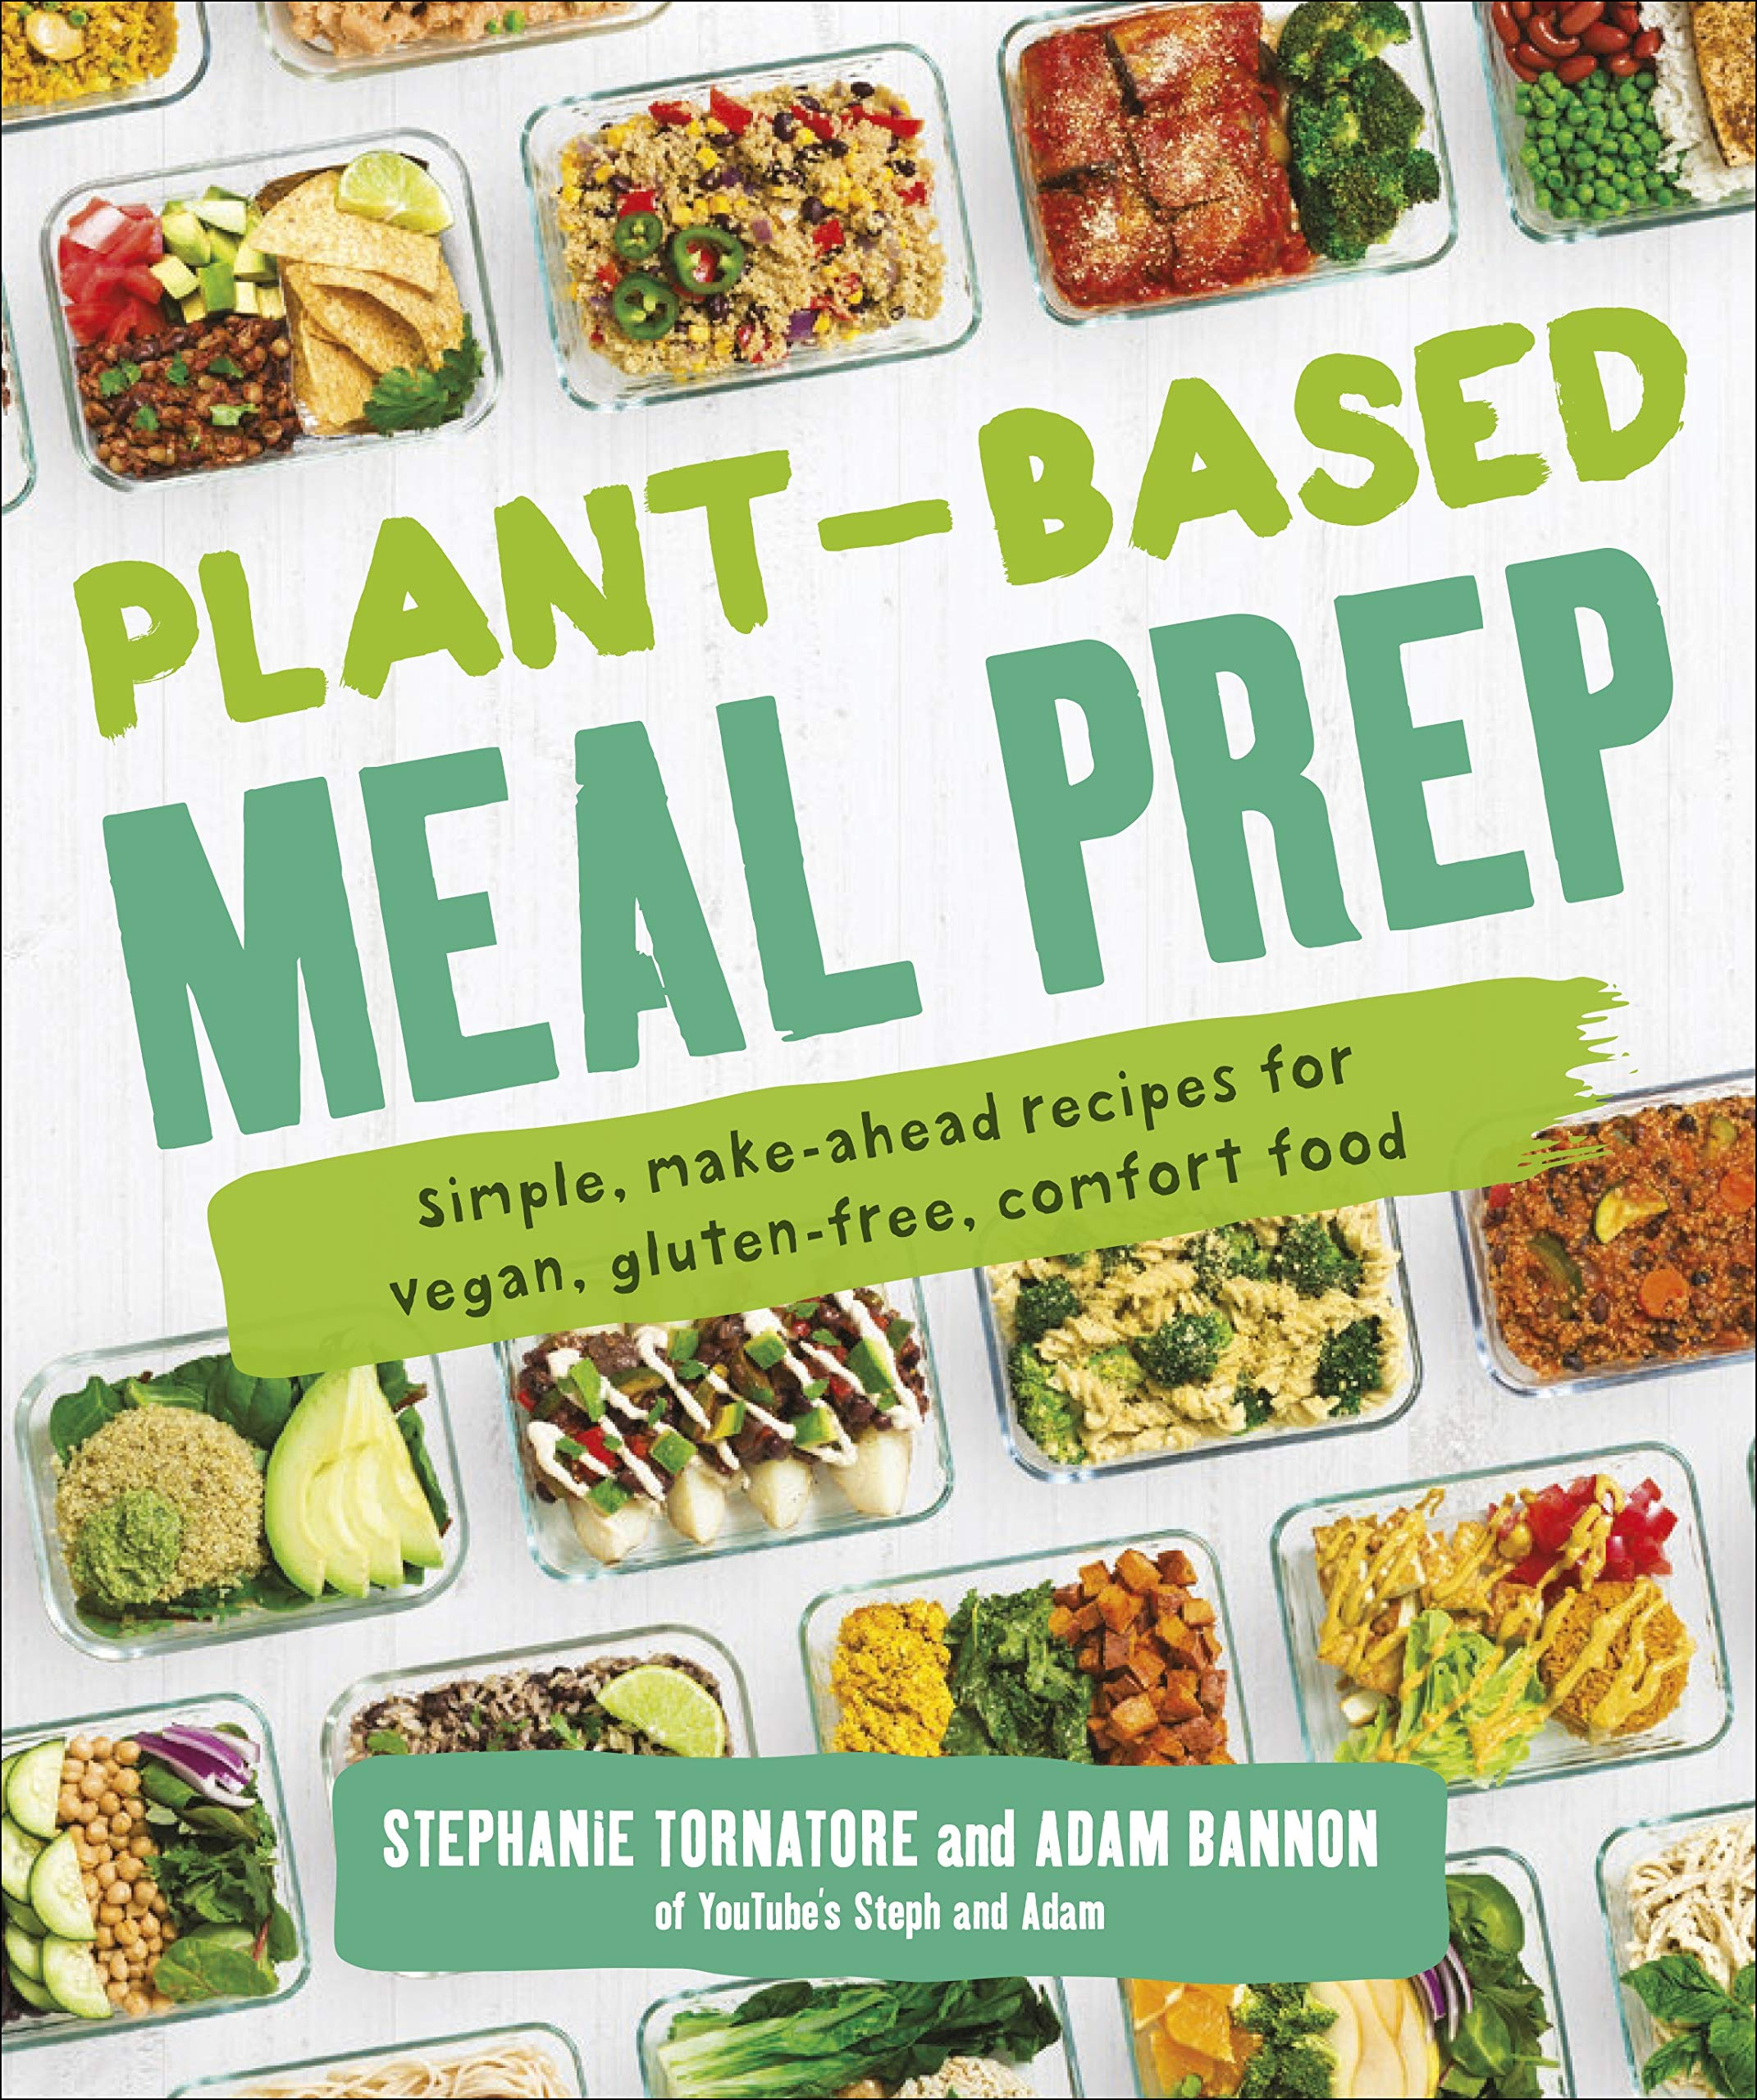 Plant-Based Meal Prep: Simple, Make-ahead Recipes for Vegan, Gluten-free, Comfort Food by Alpha